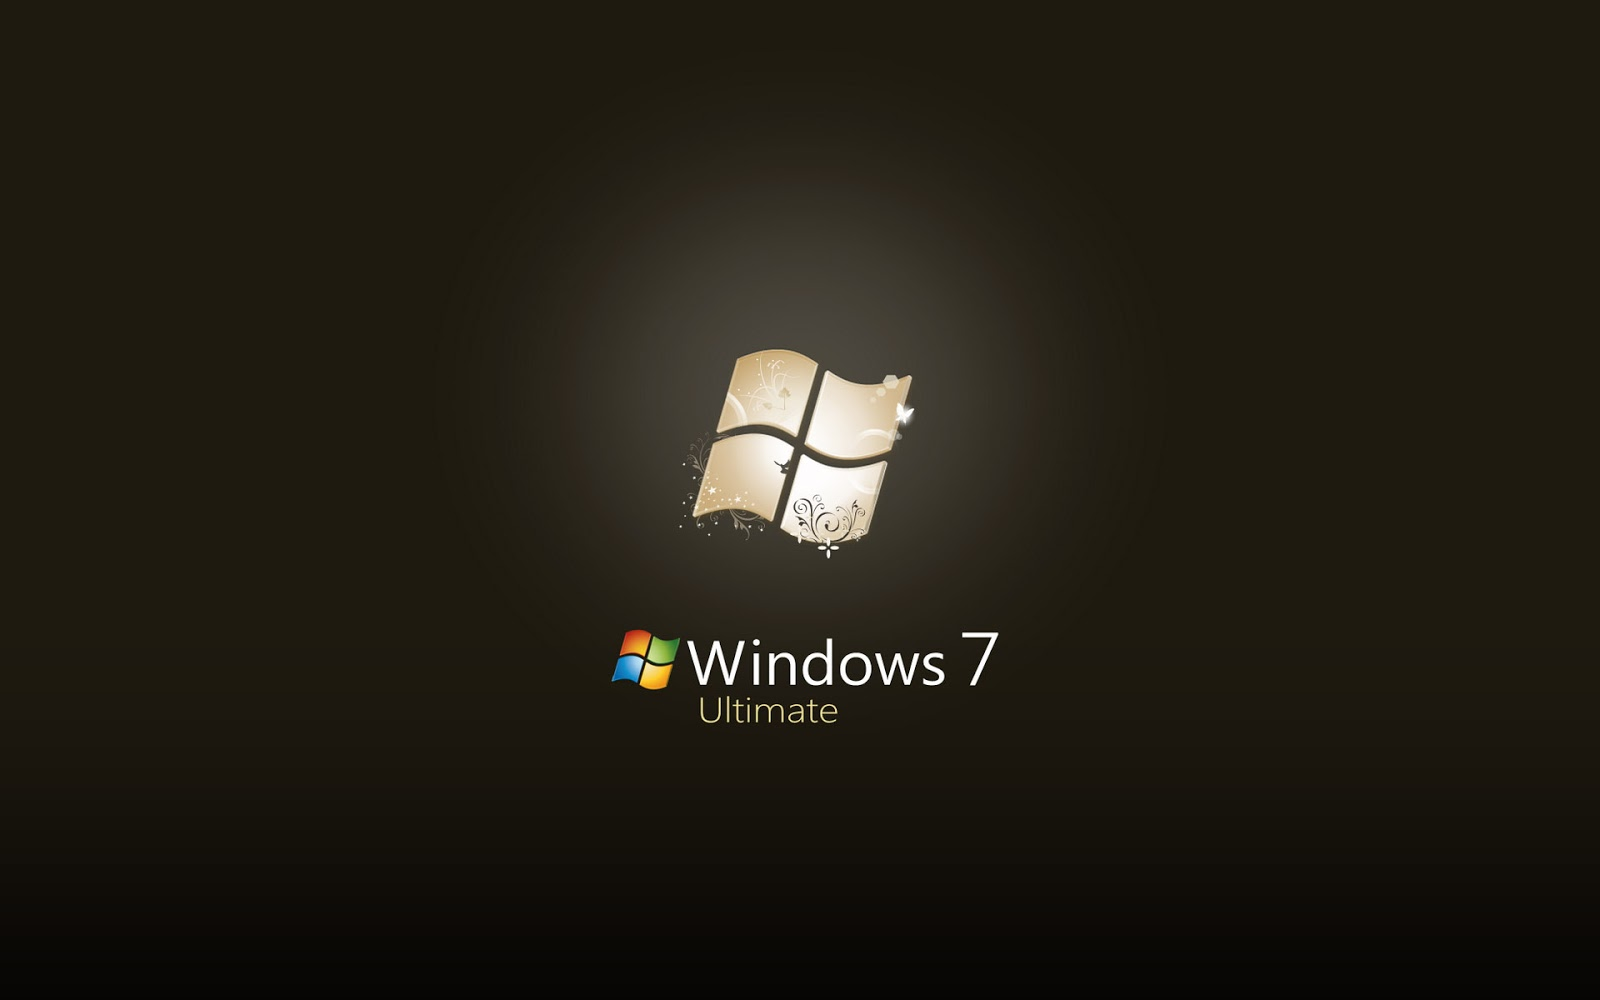 Wallpaper Windows 7 Full Hd